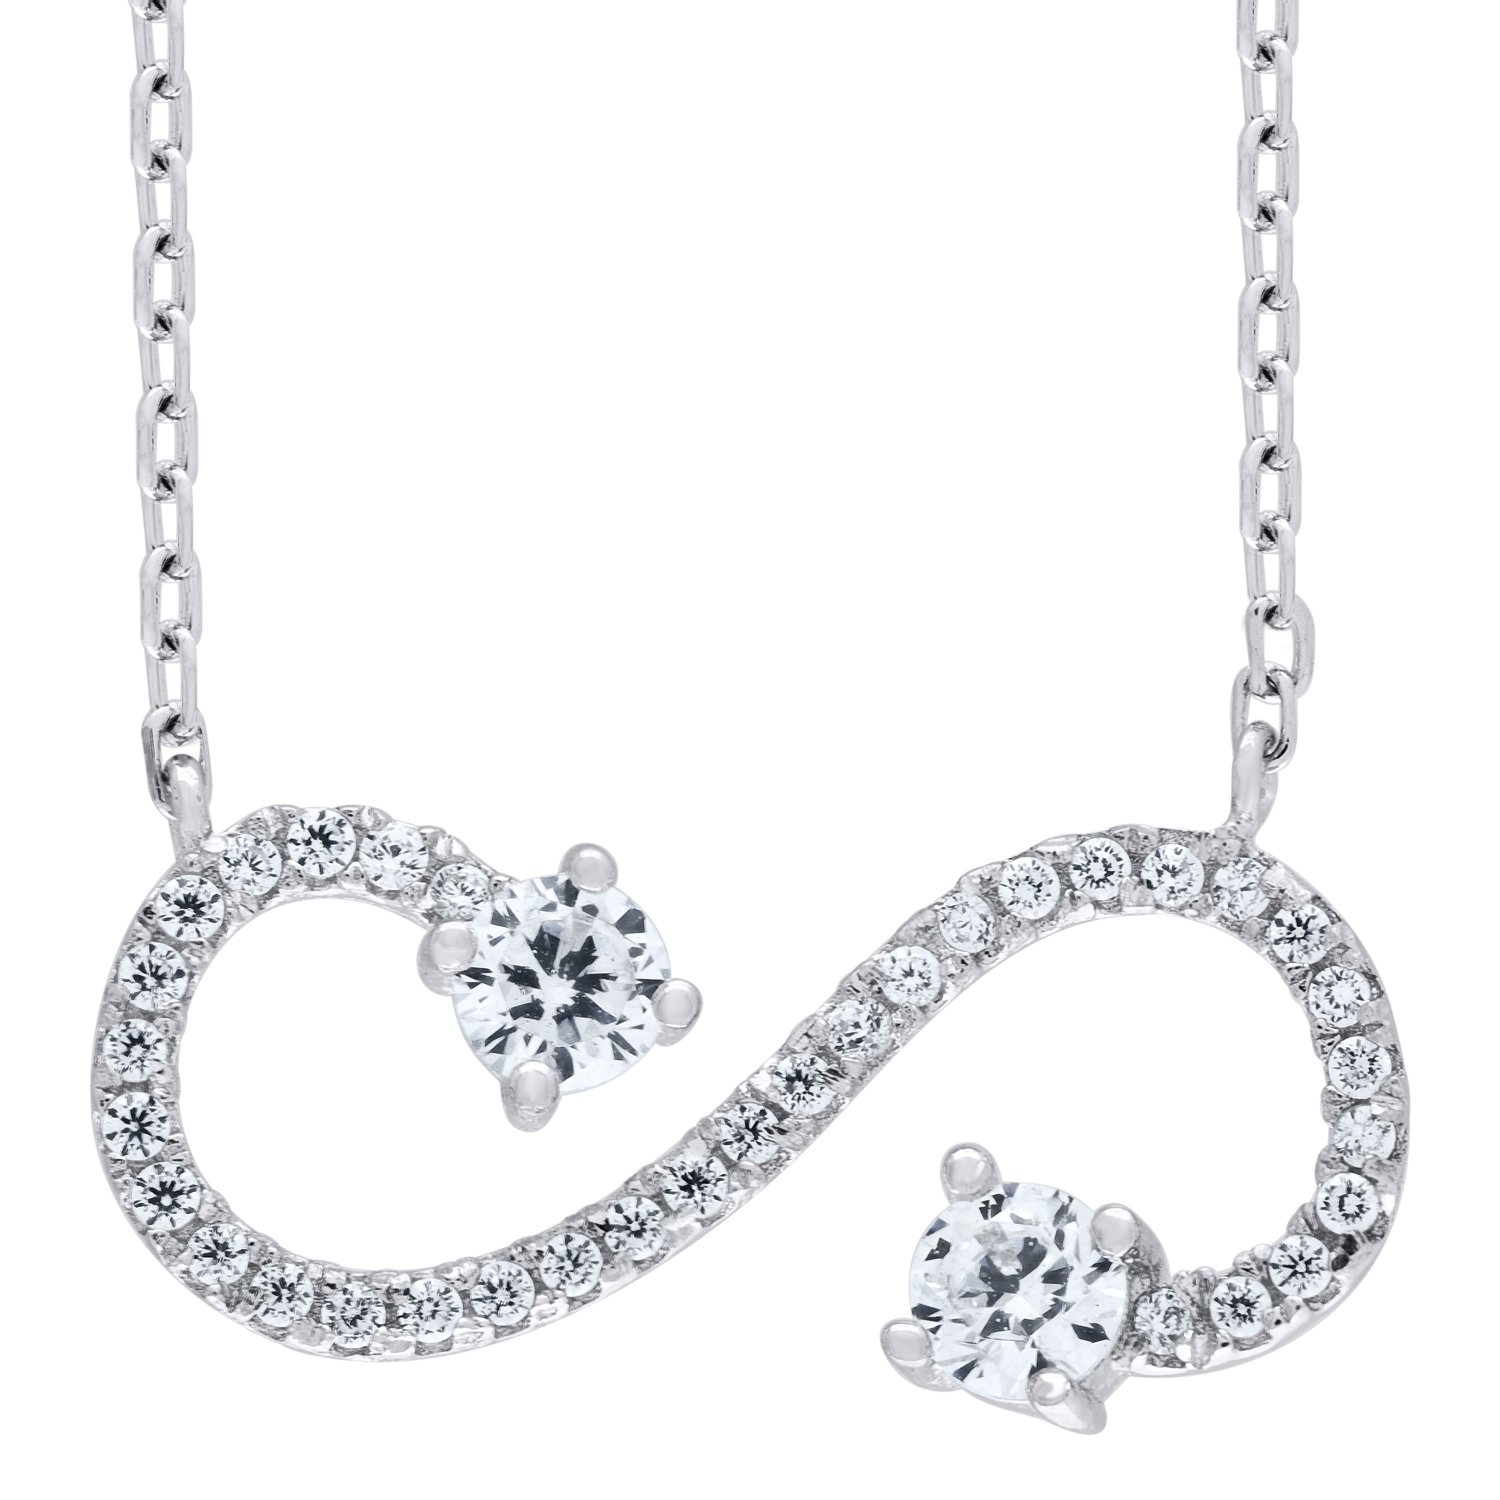 Jawa Jewelers 925 Sterling Silver CZ Infinity 2.37gm Womans Pendant Necklace